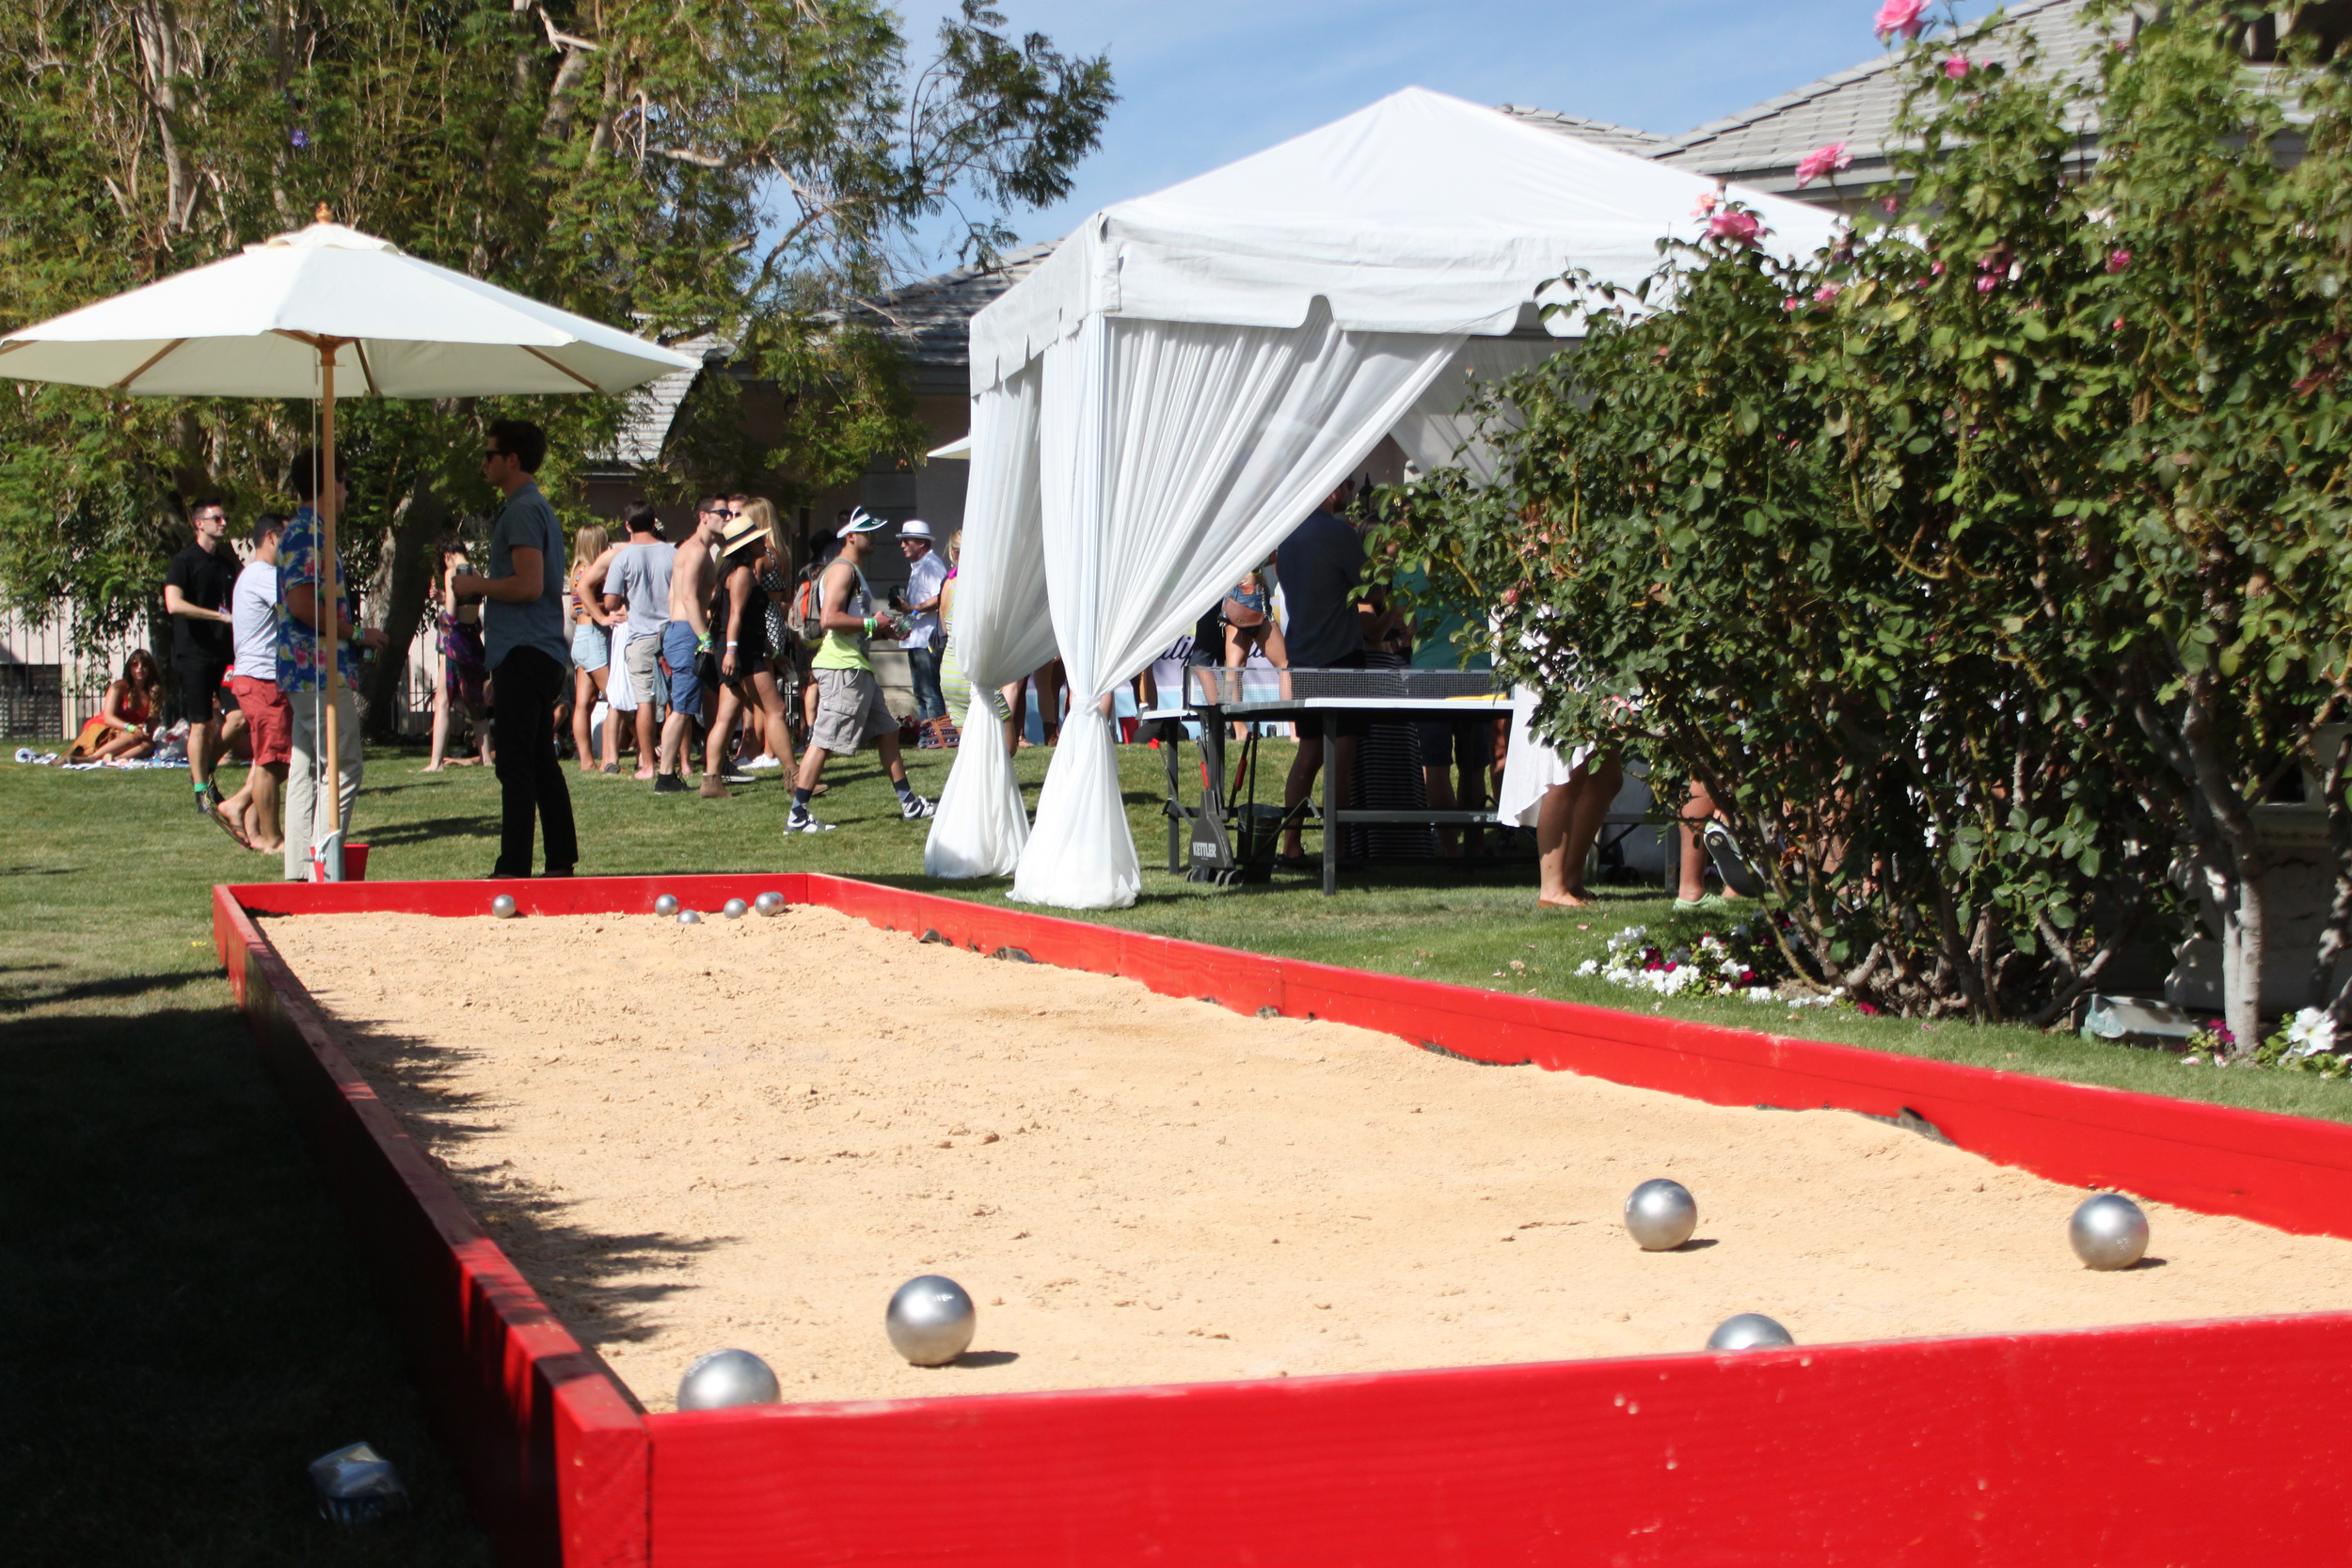 A sandy game of bocce ball